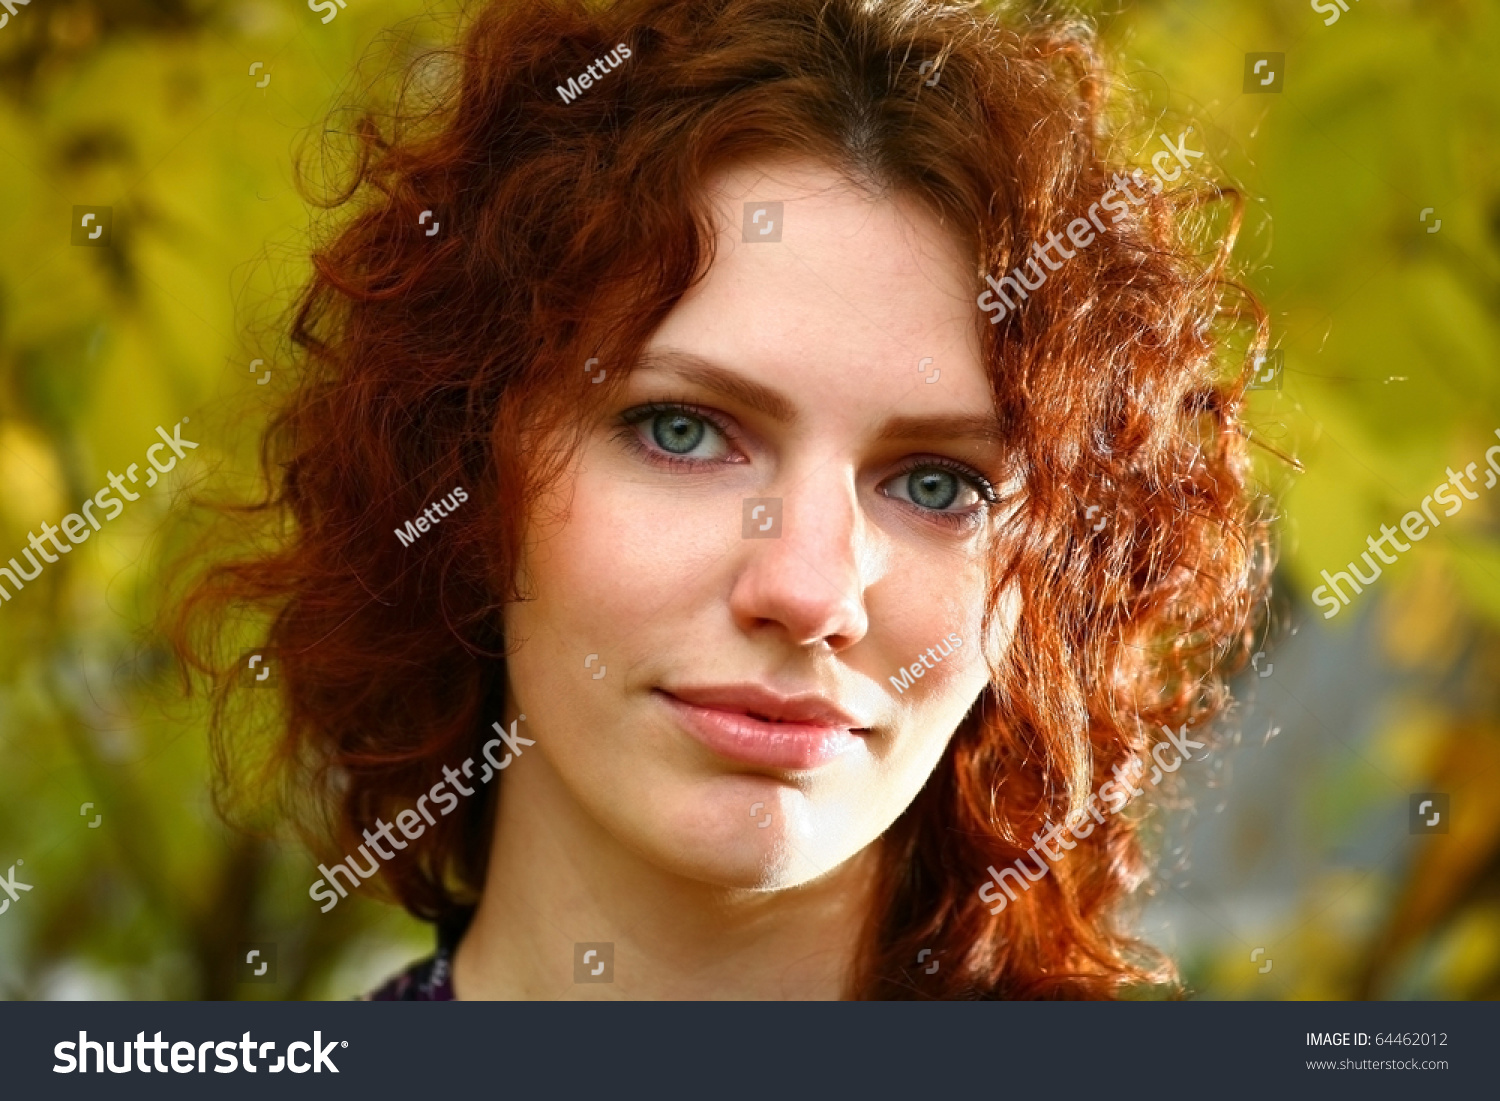 Ginger haired lady headshot backlit. A Beautiful Red-Haired Woman With A Curly Hairstyle Walking In The Park. Autumn Portrait Of A Calm Girl.